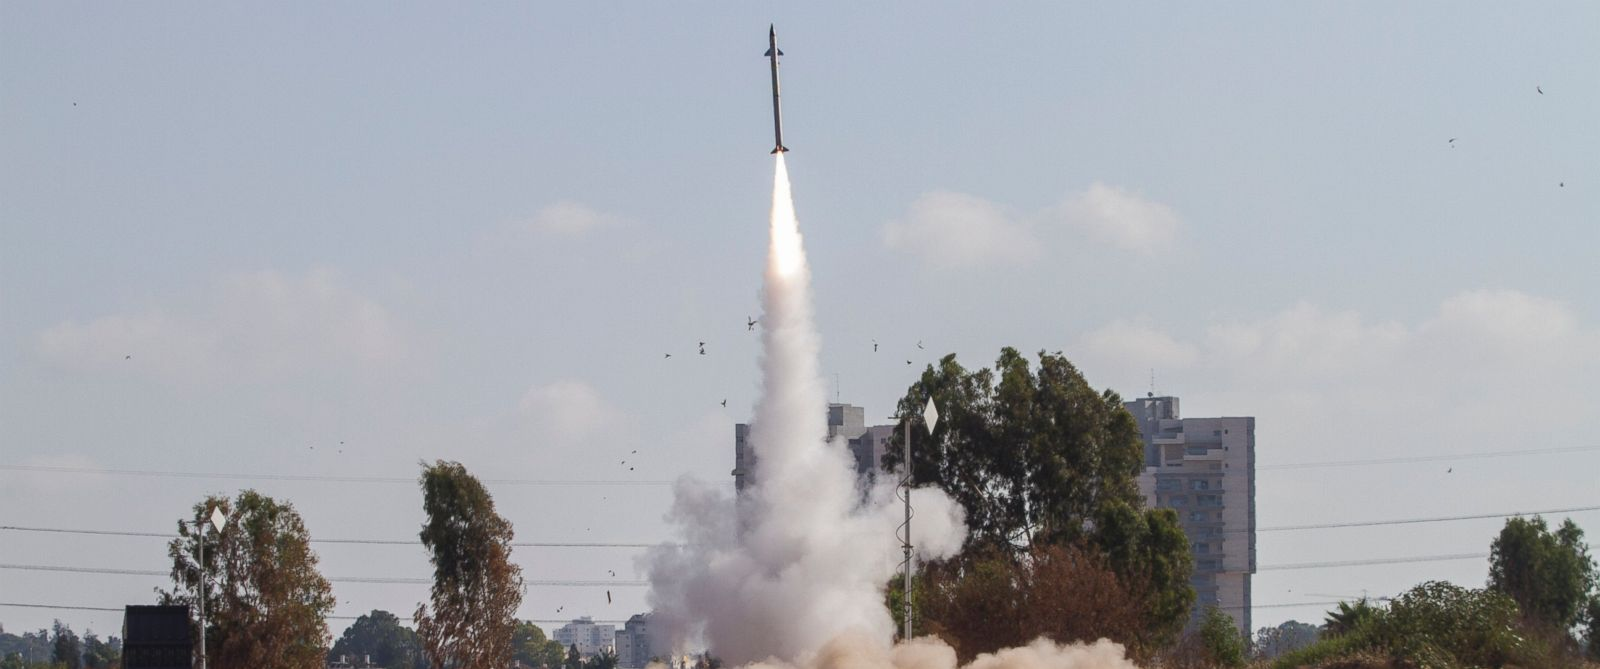 PHOTO: In this July 9, 2014 file photo, an Iron Dome air defense system fires to intercept a rocket from the Gaza Strip in Tel Aviv, Israel.